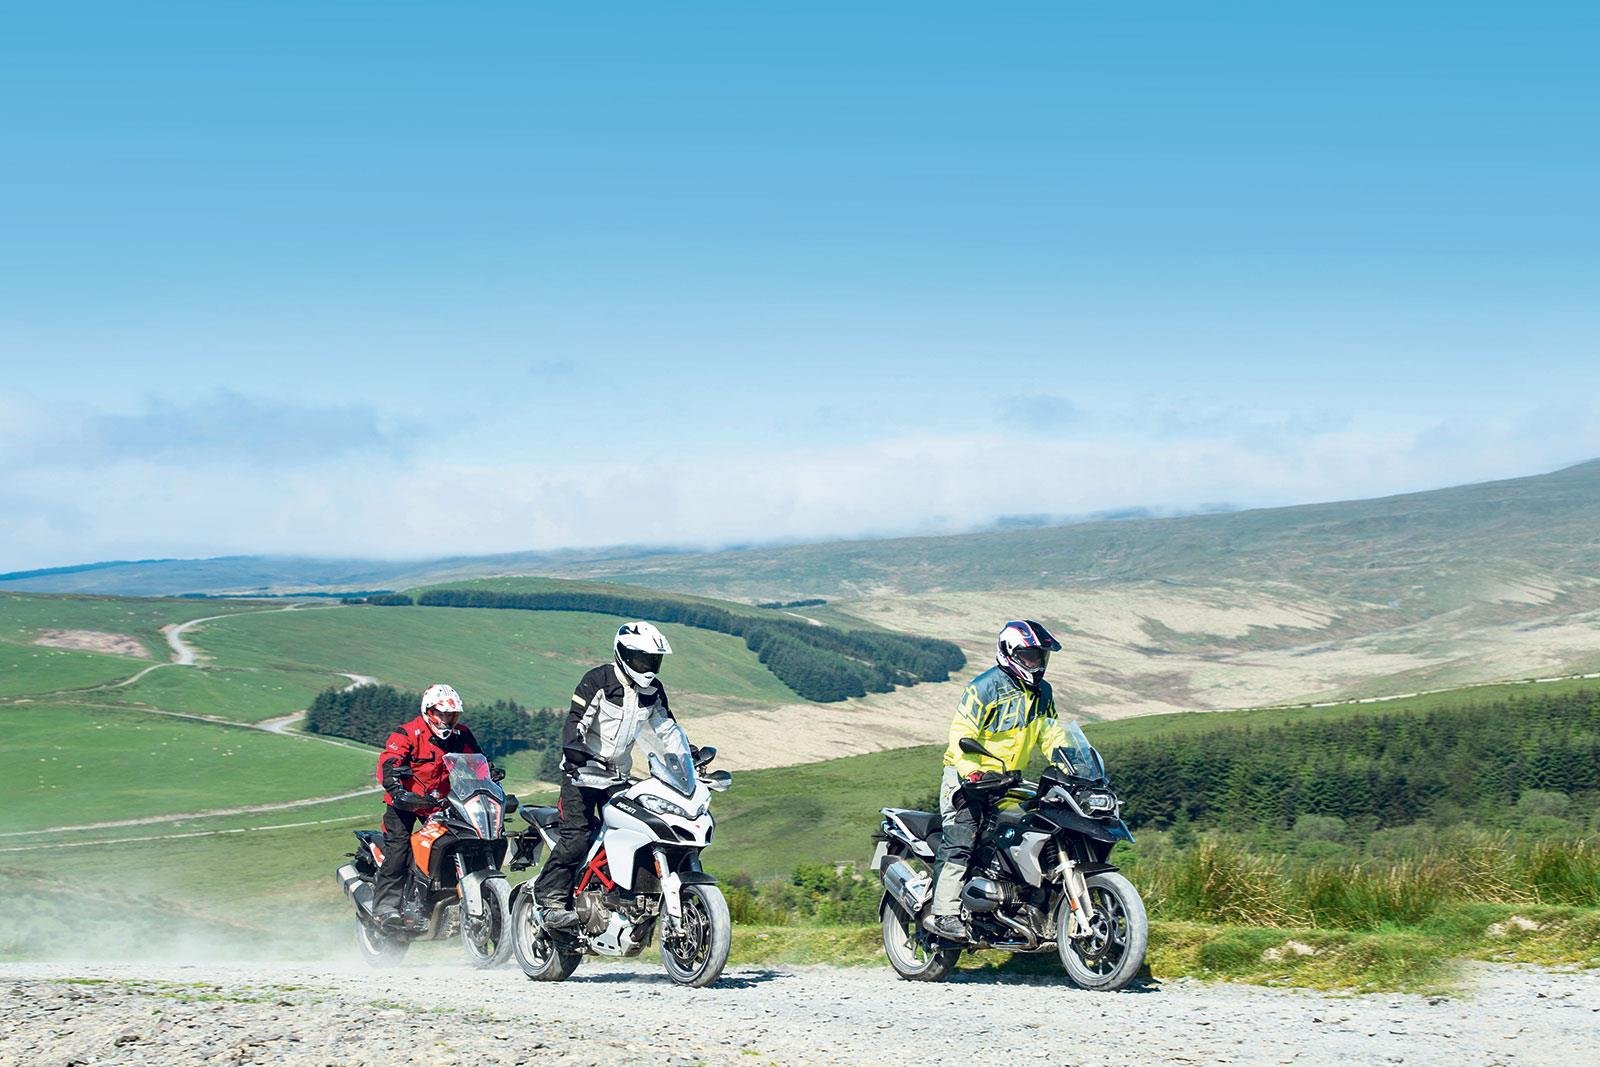 An off-road riding school is a great way to get extra skills and experience